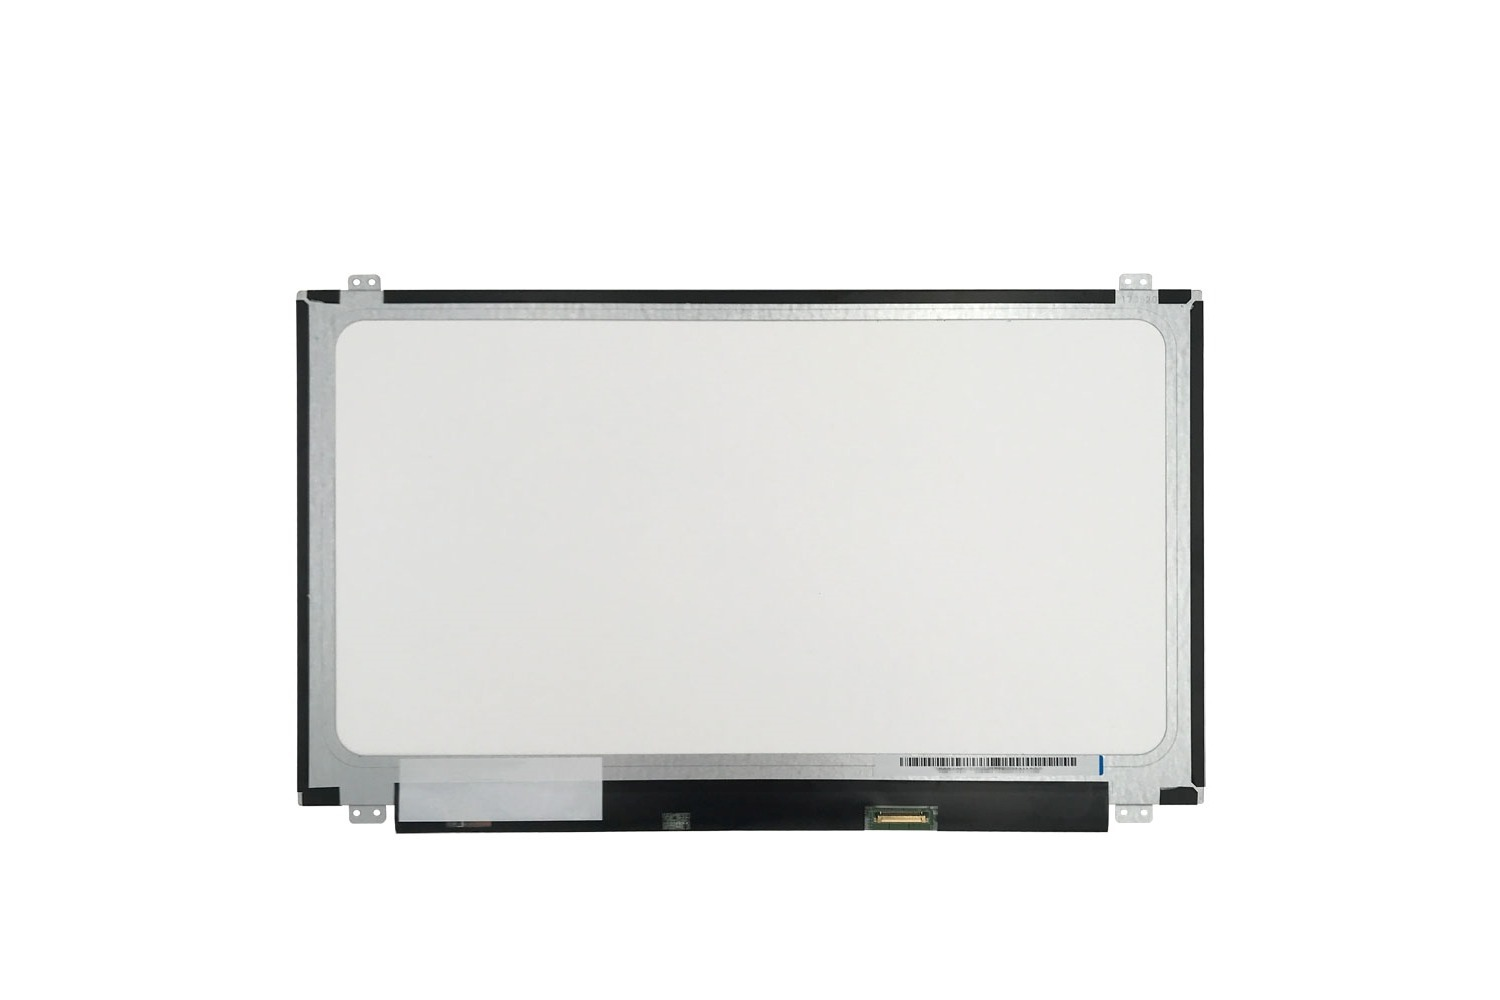 Display Panel Screen Chimei Innolux N156HGE-LB1 TN 15.6 1920x1080